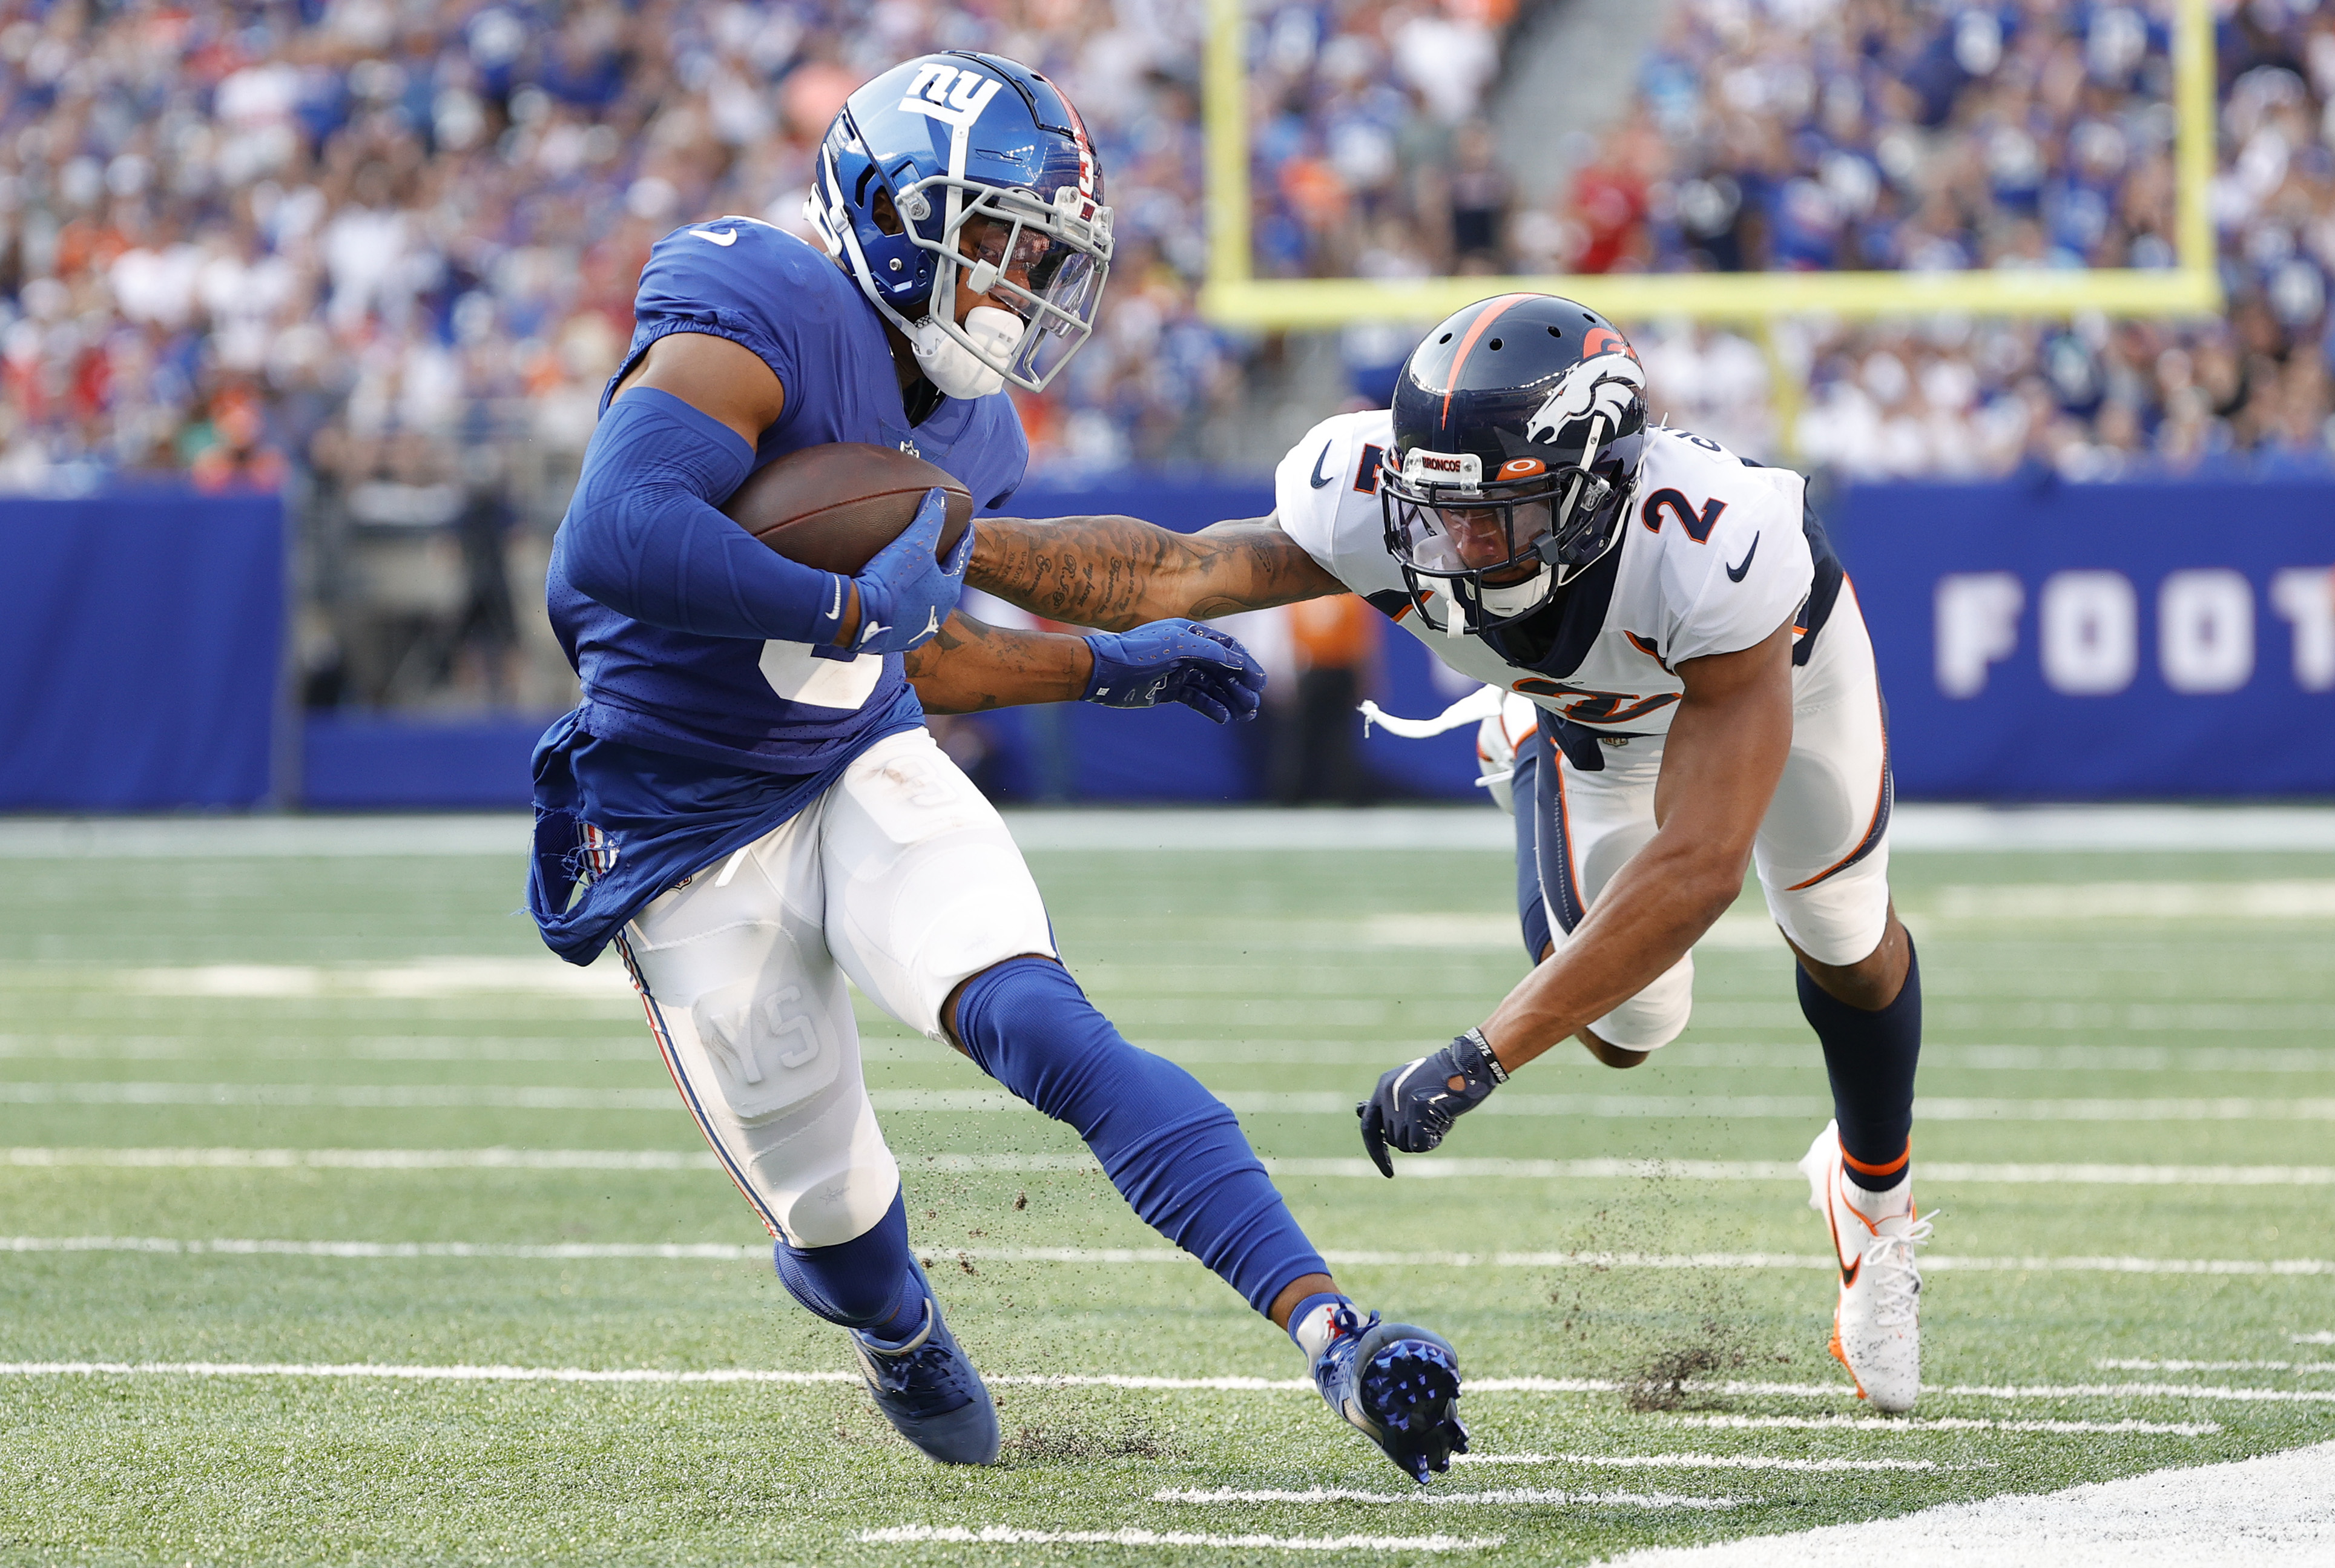 Sterling Shepard #3 of the New York Giants makes a catch against Pat Surtain II #2 of the Denver Broncos during the first half at MetLife Stadium on September 12, 2021 in East Rutherford, New Jersey.